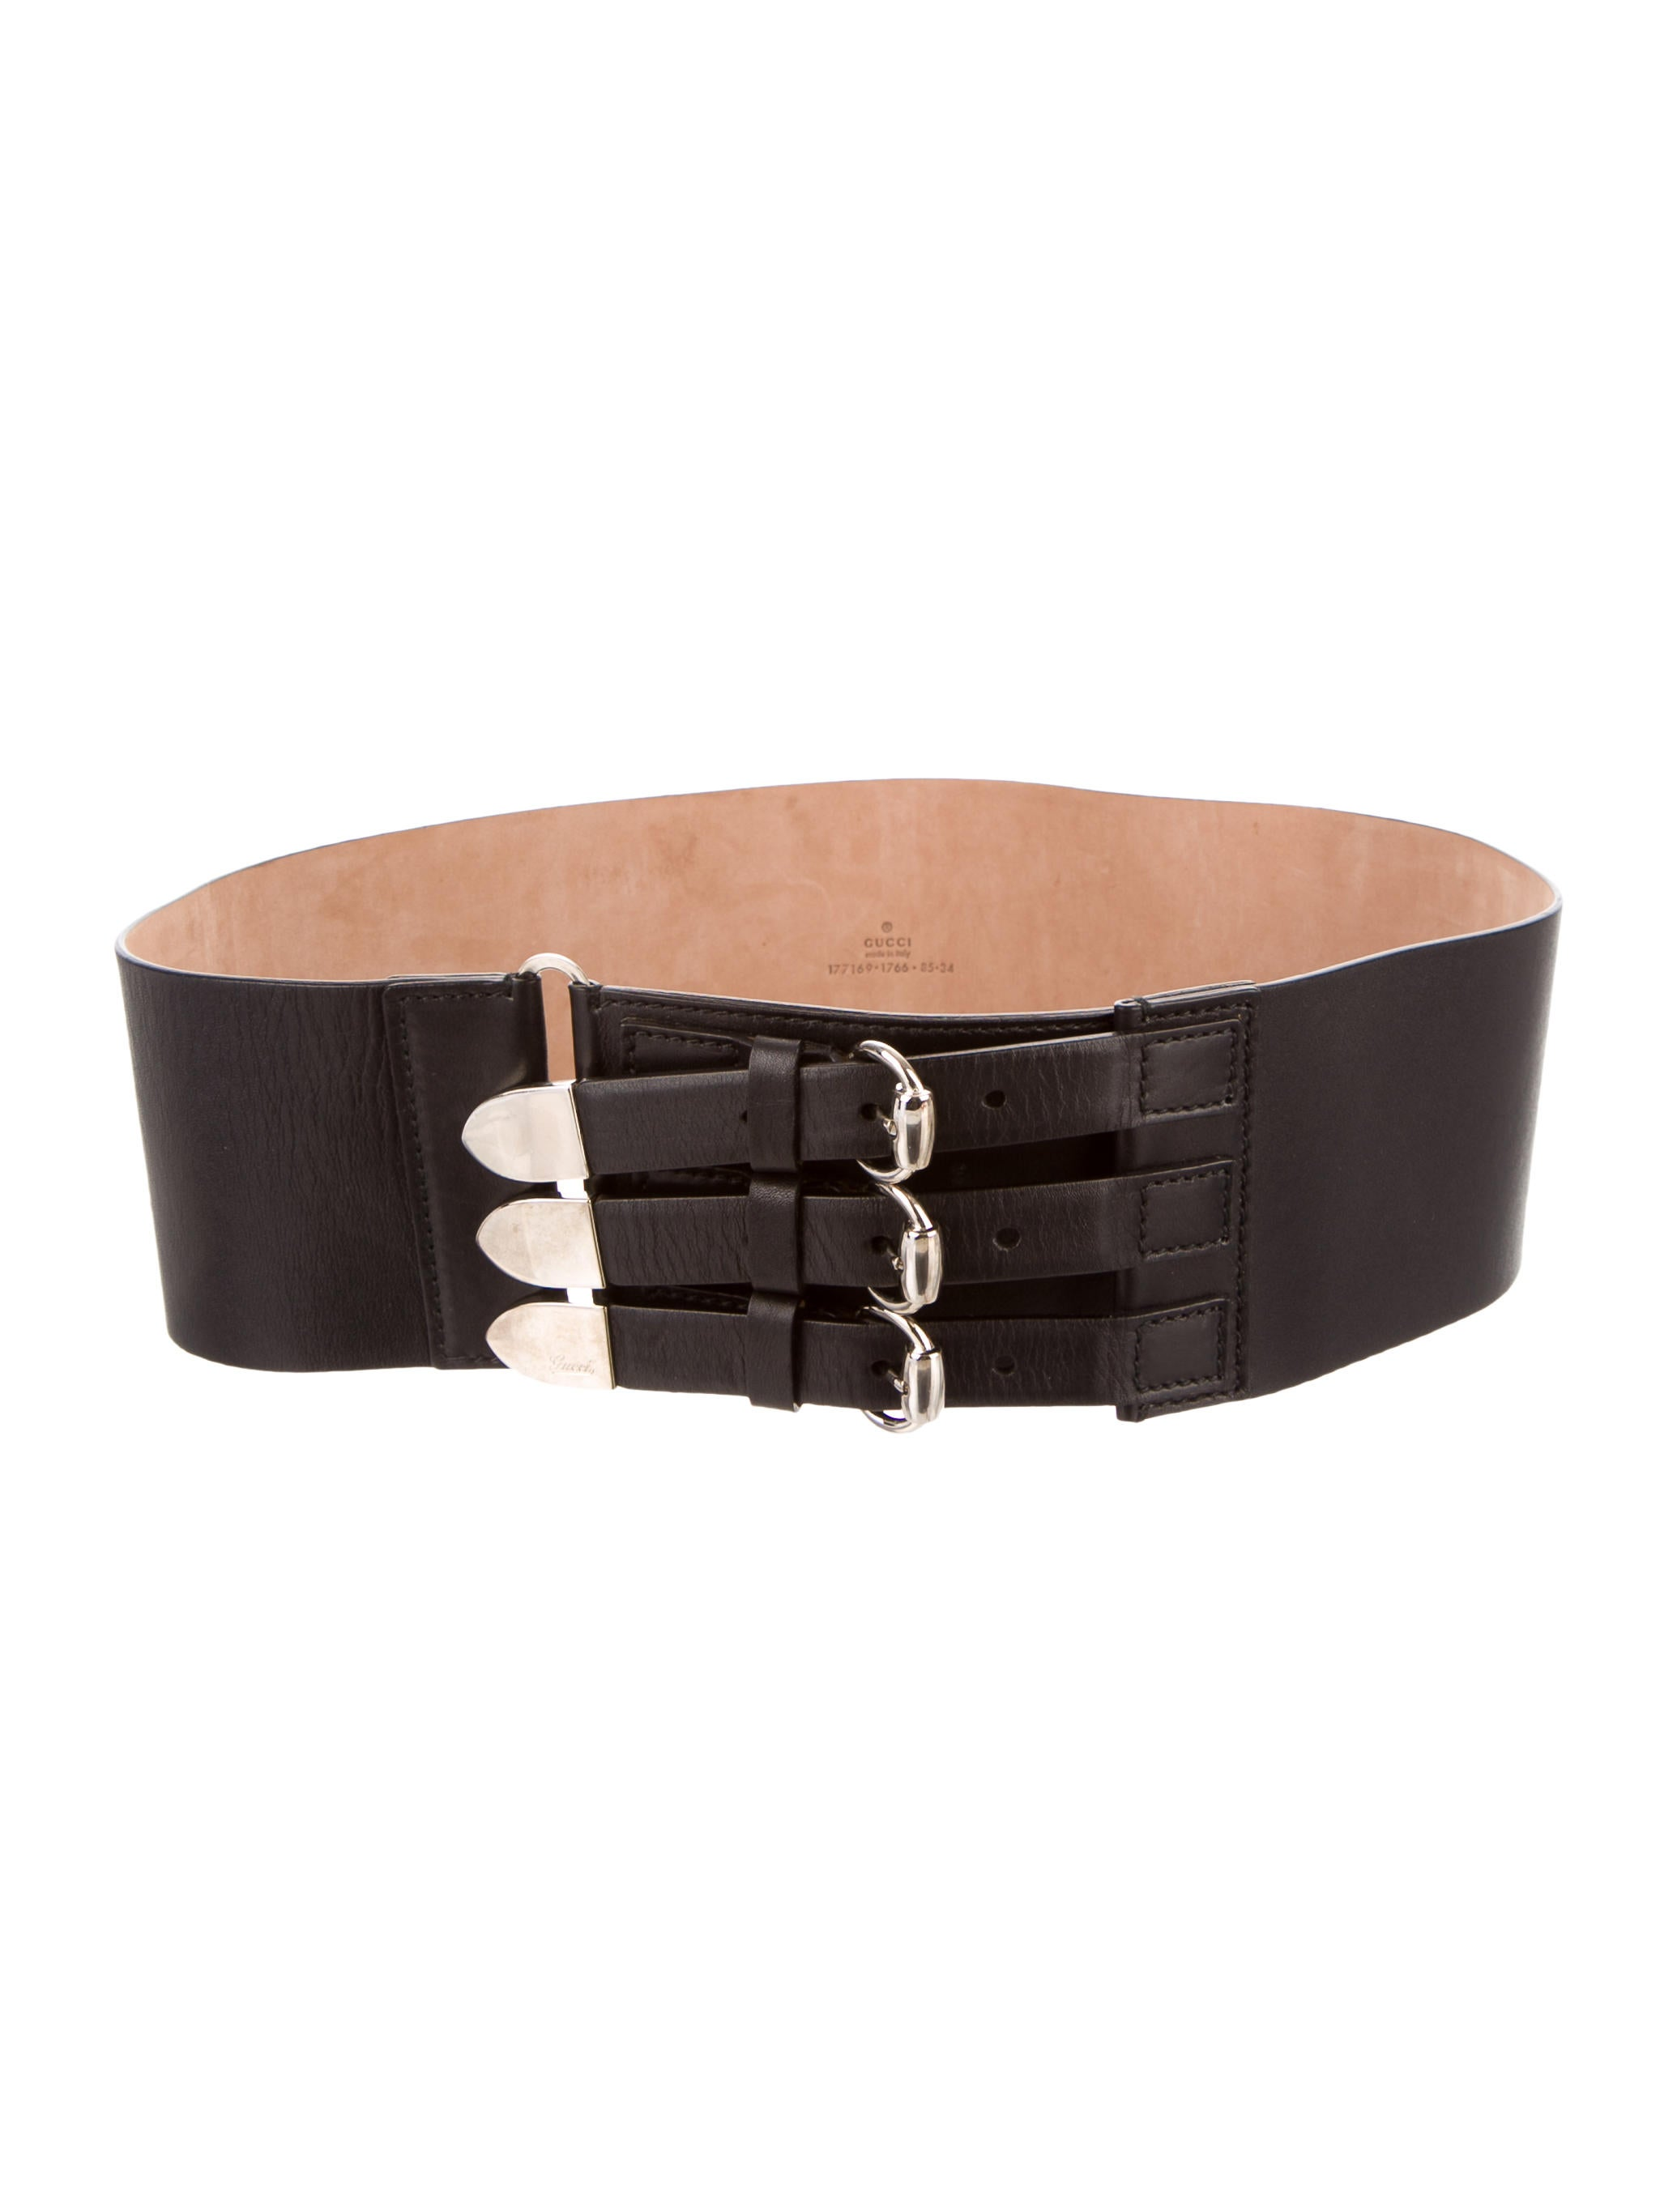 Find great deals on eBay for Wide Black Waist Belt in Women's Belts. Shop with confidence.